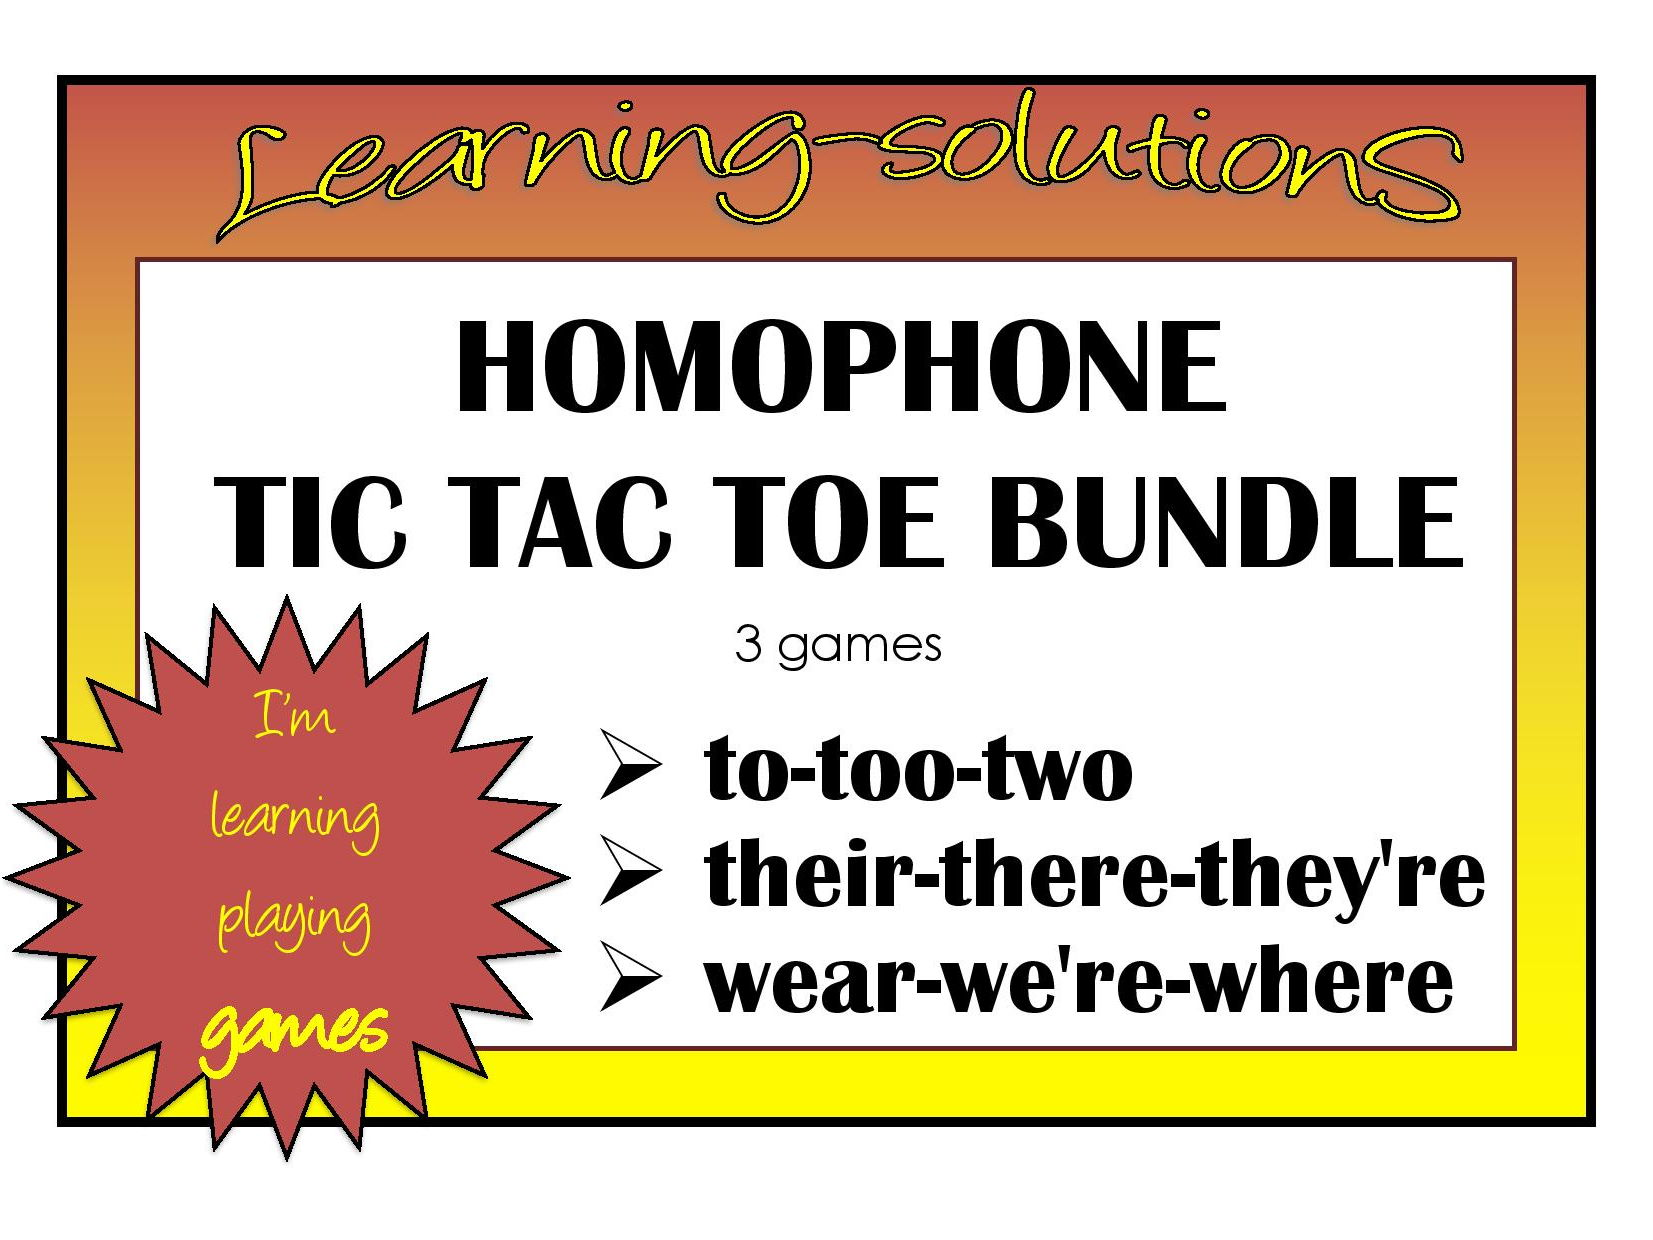 HOMOPHONE TIC TAC TOE BUNDLE - 3 games - to/too/two - their/there/they're - wear/we're/where